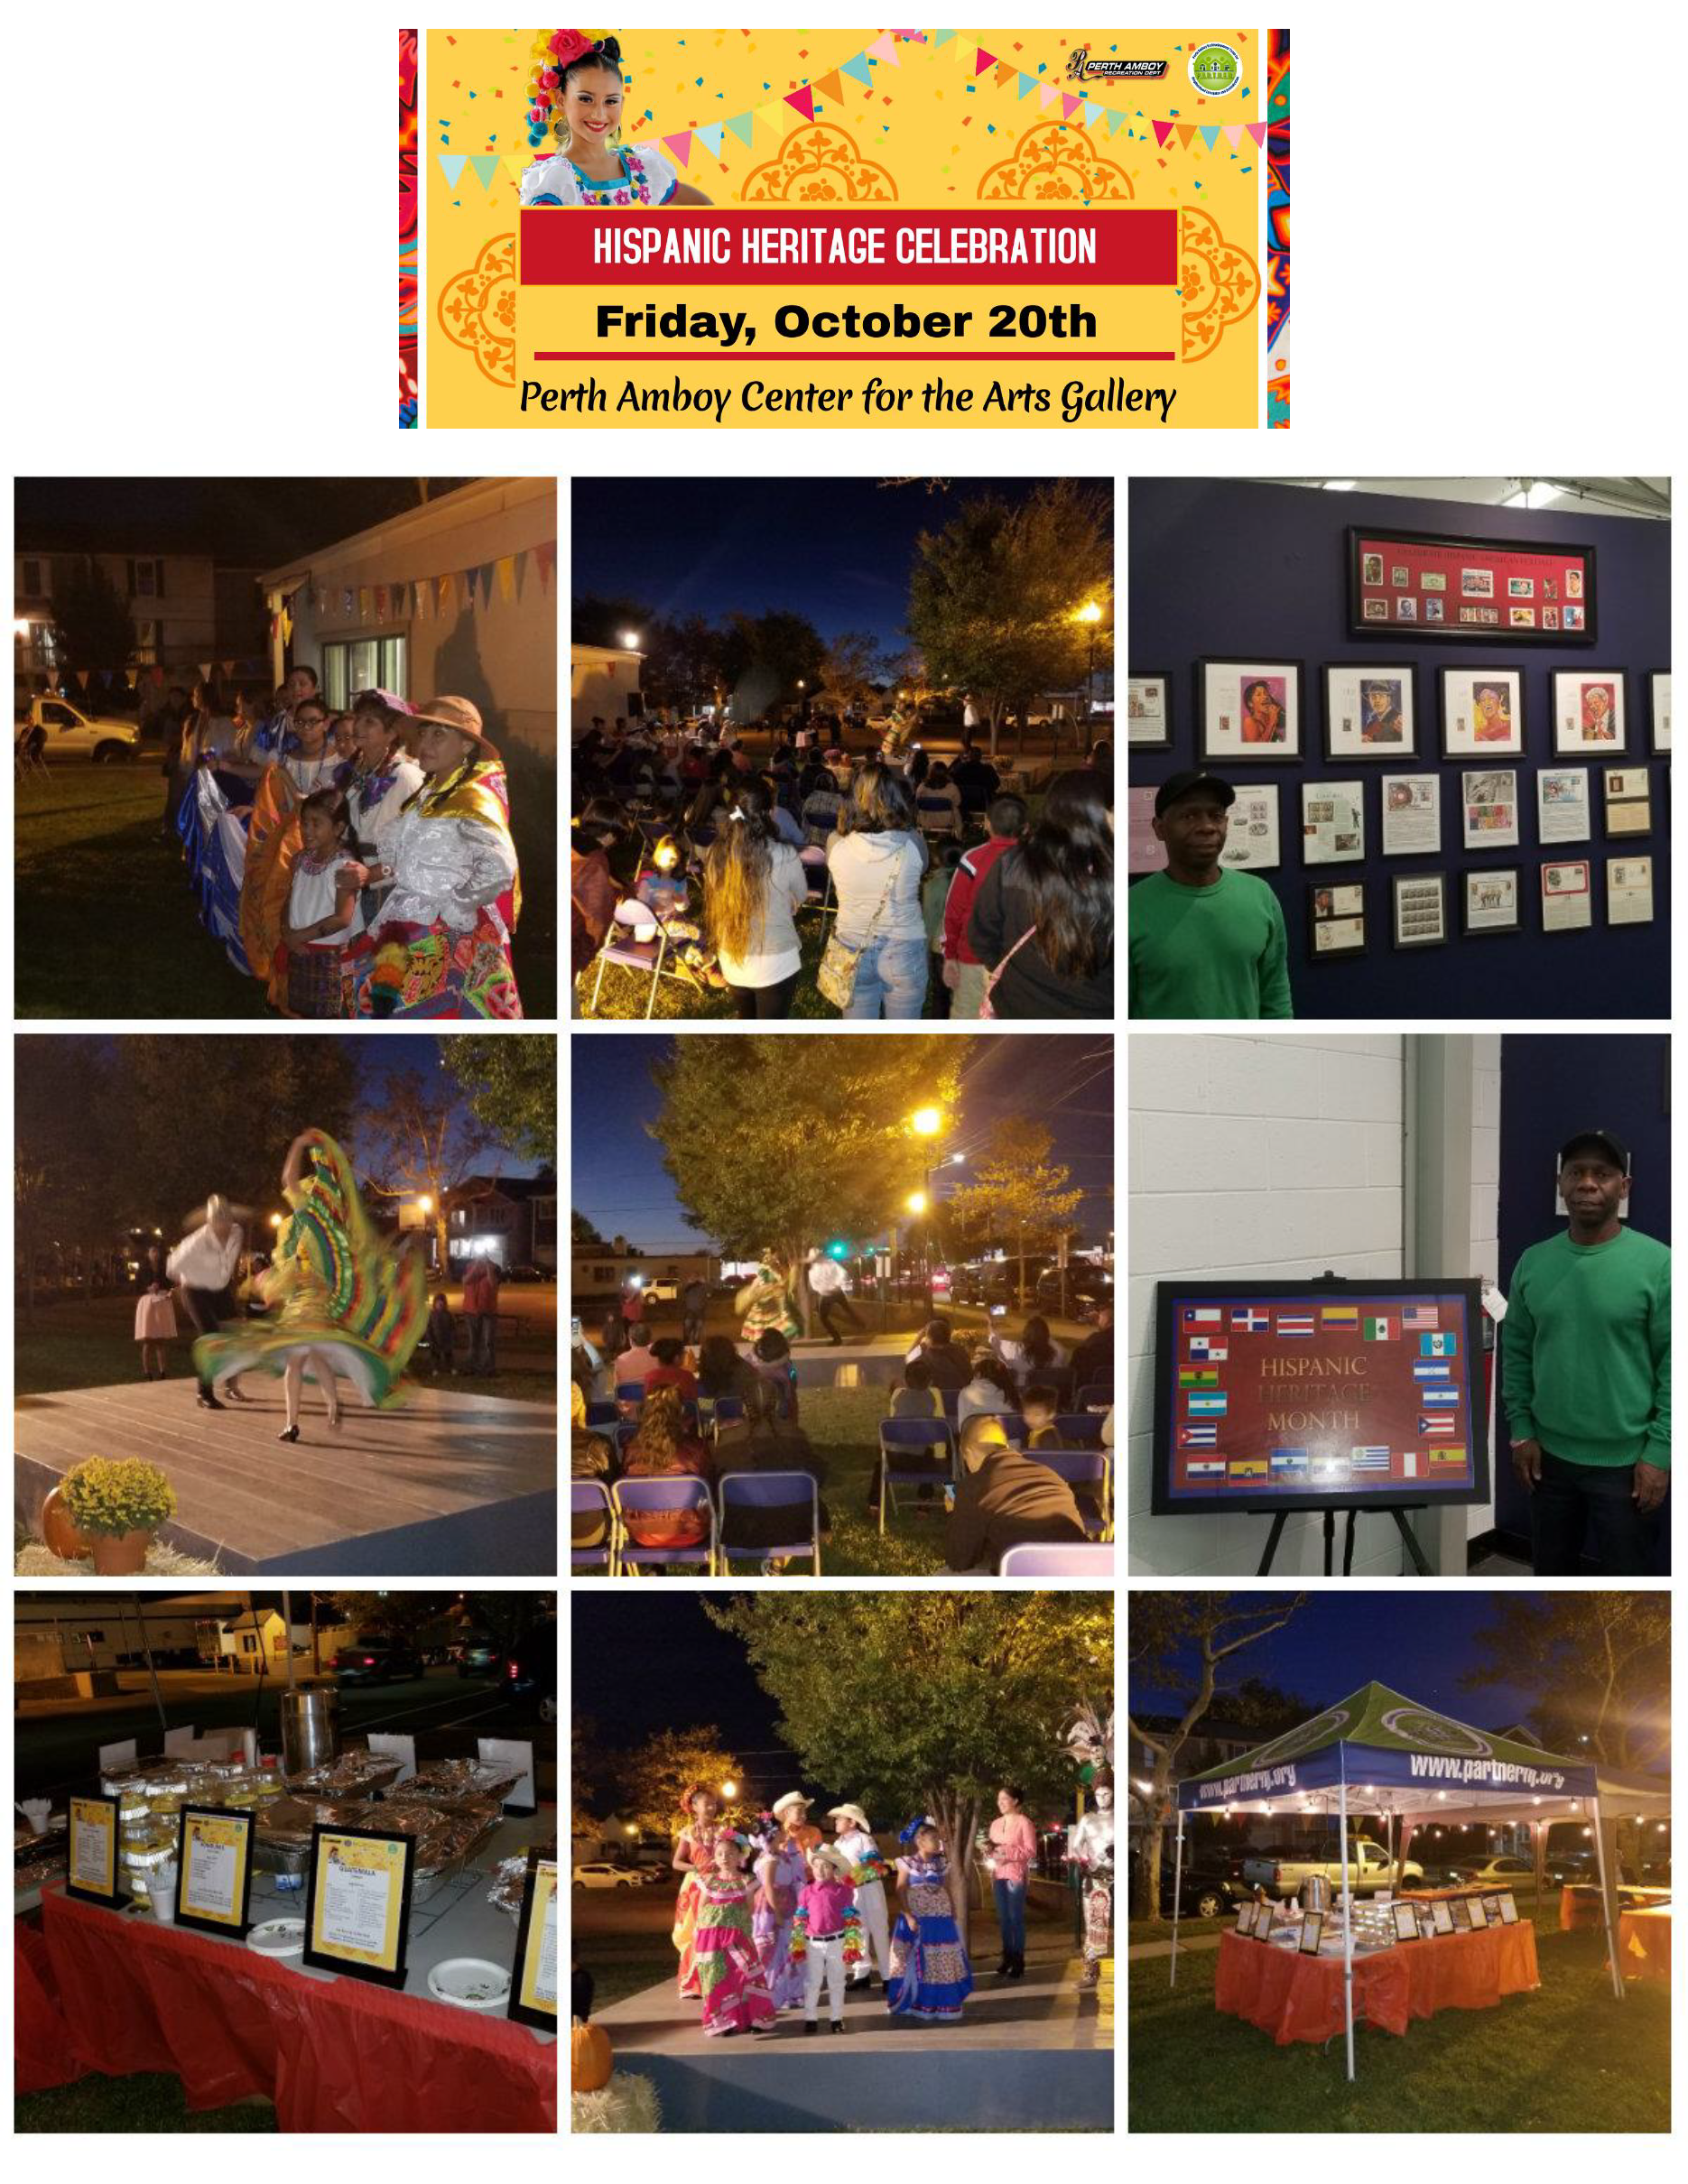 Hispanic Heritage Celebration, October 2017